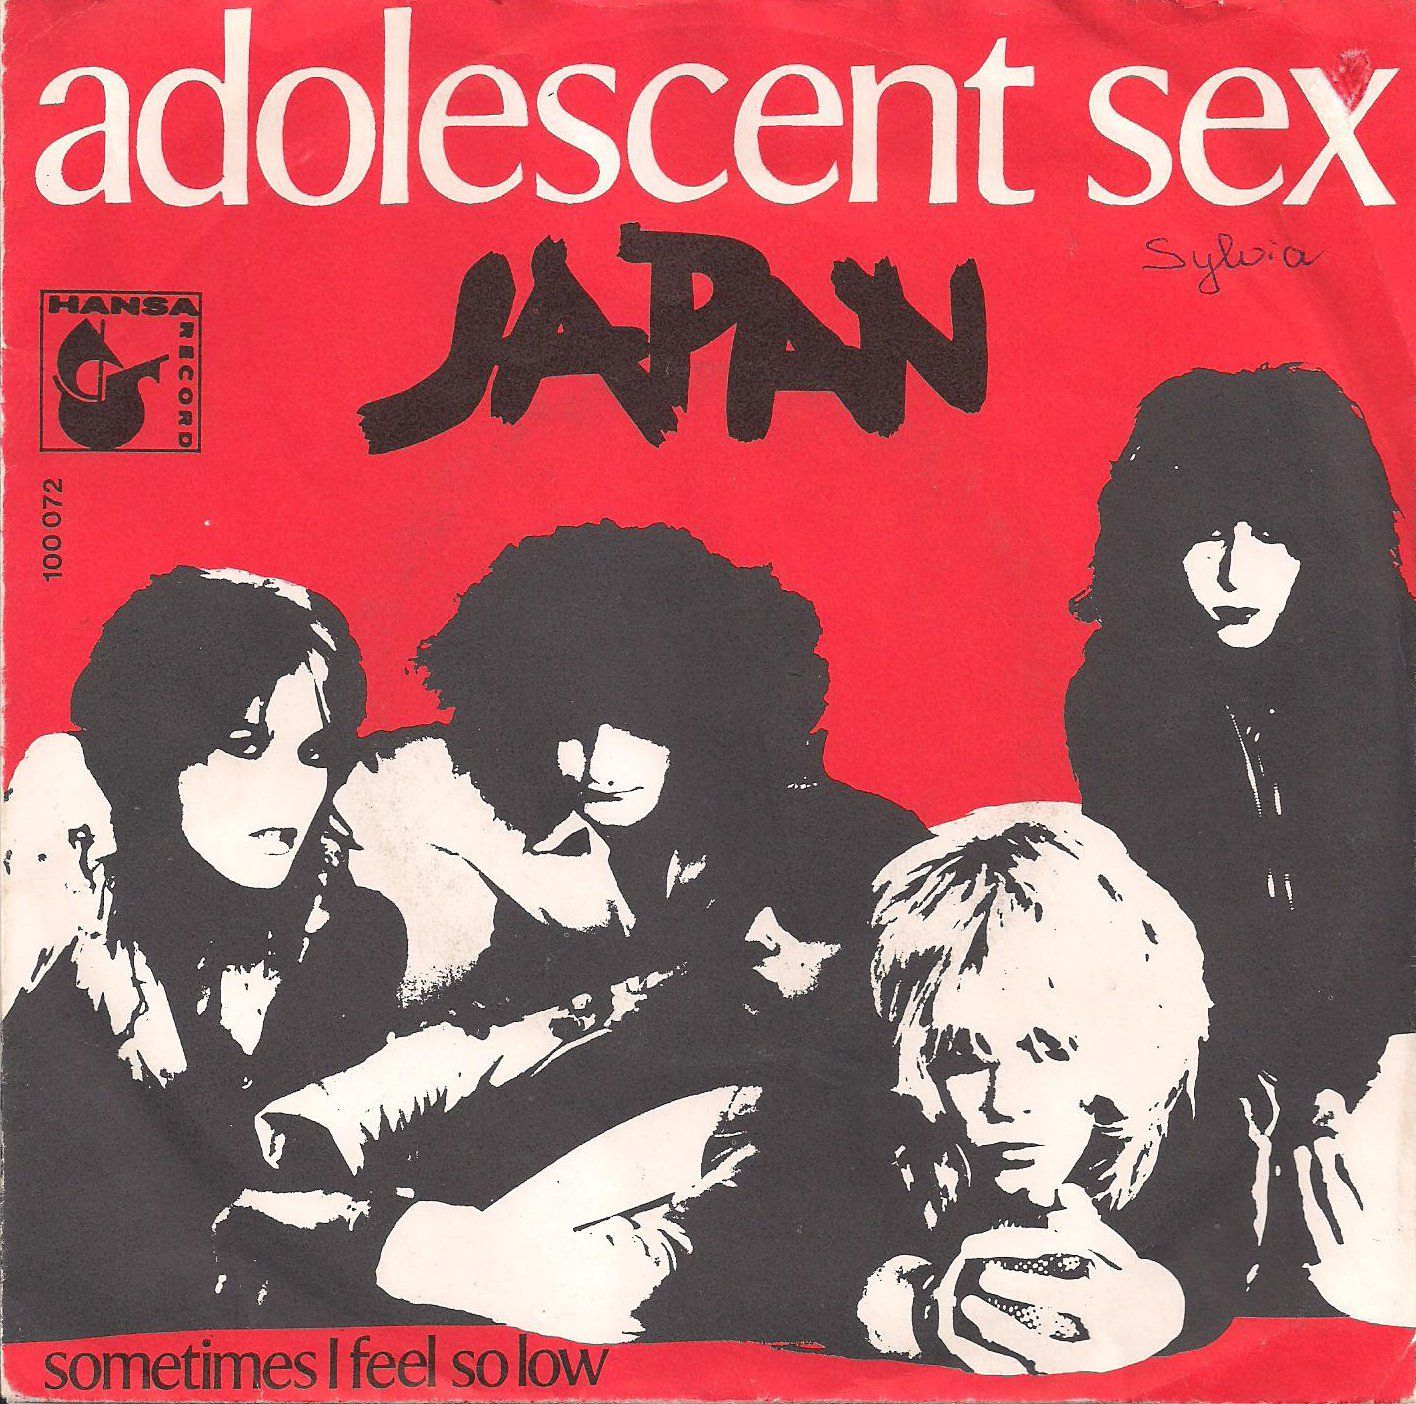 Japan adolescent sex cd covers